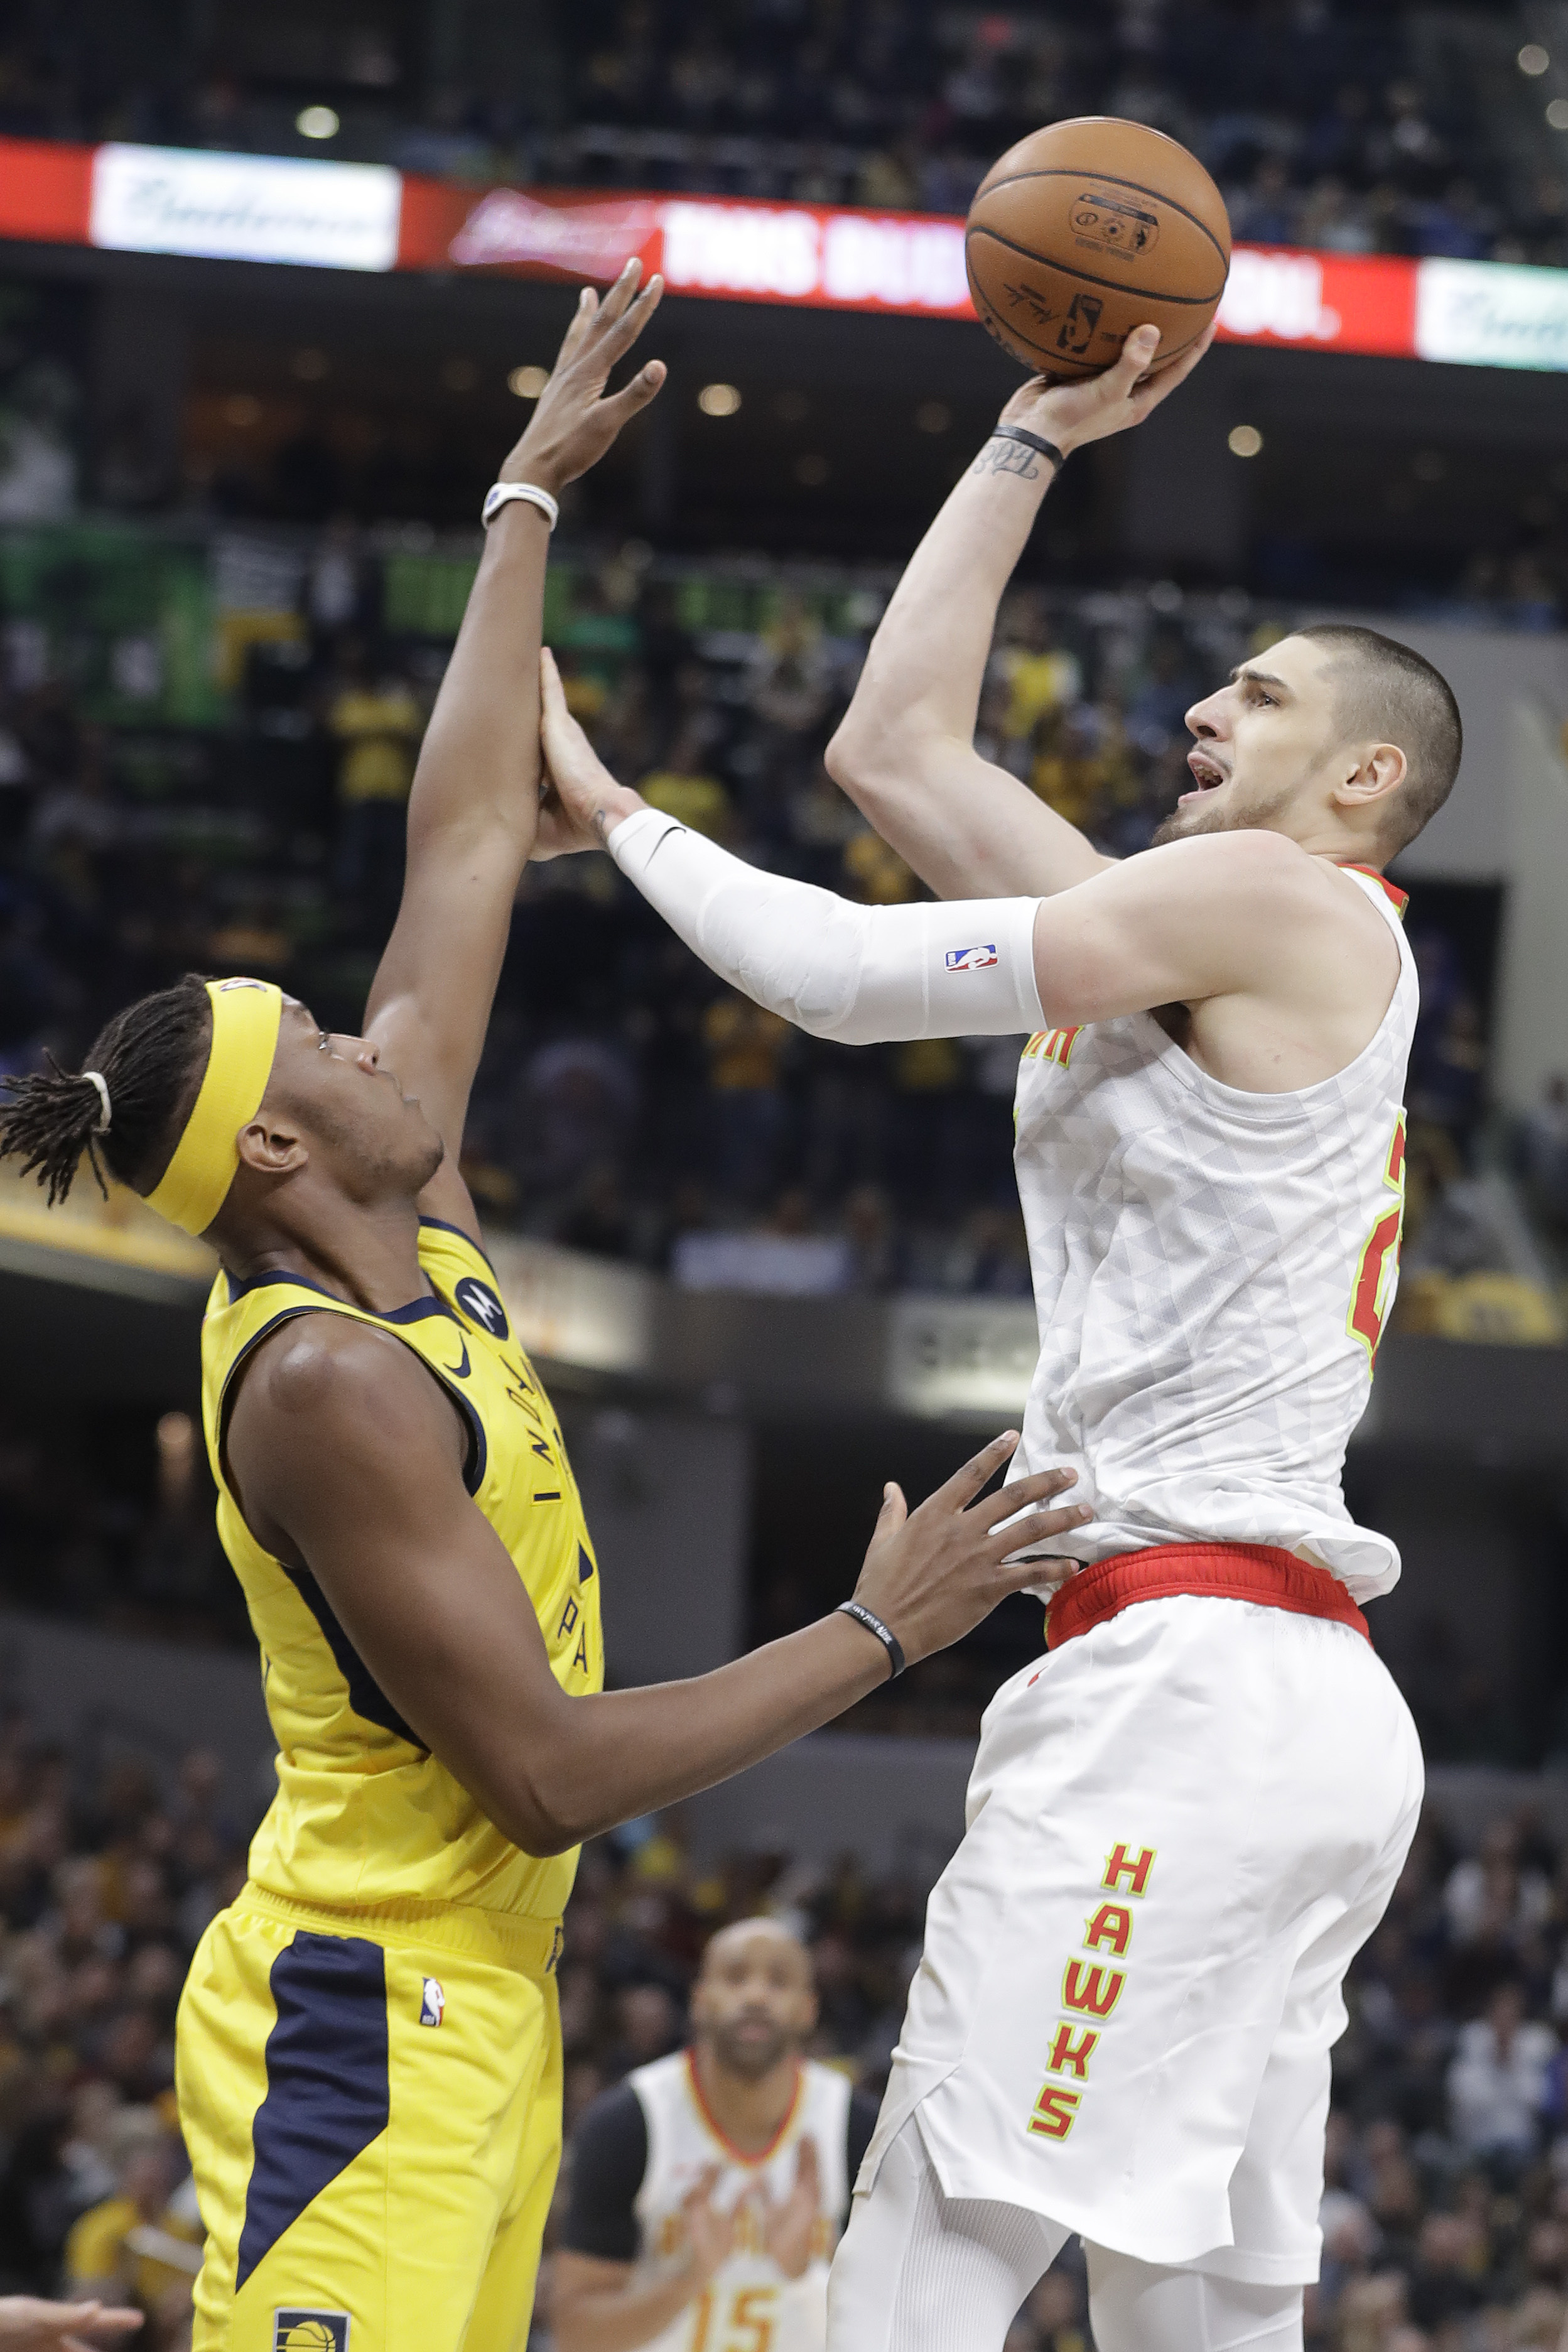 Hawks Pacers Basketball_1546296190652